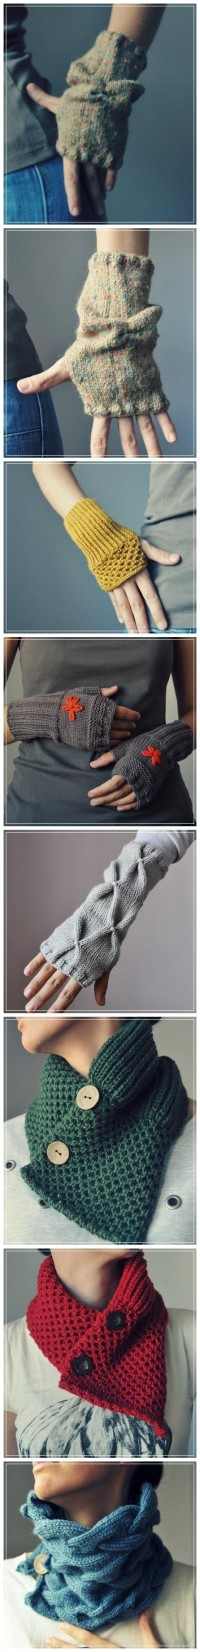 Hand Knitted_gloves & neck warmer